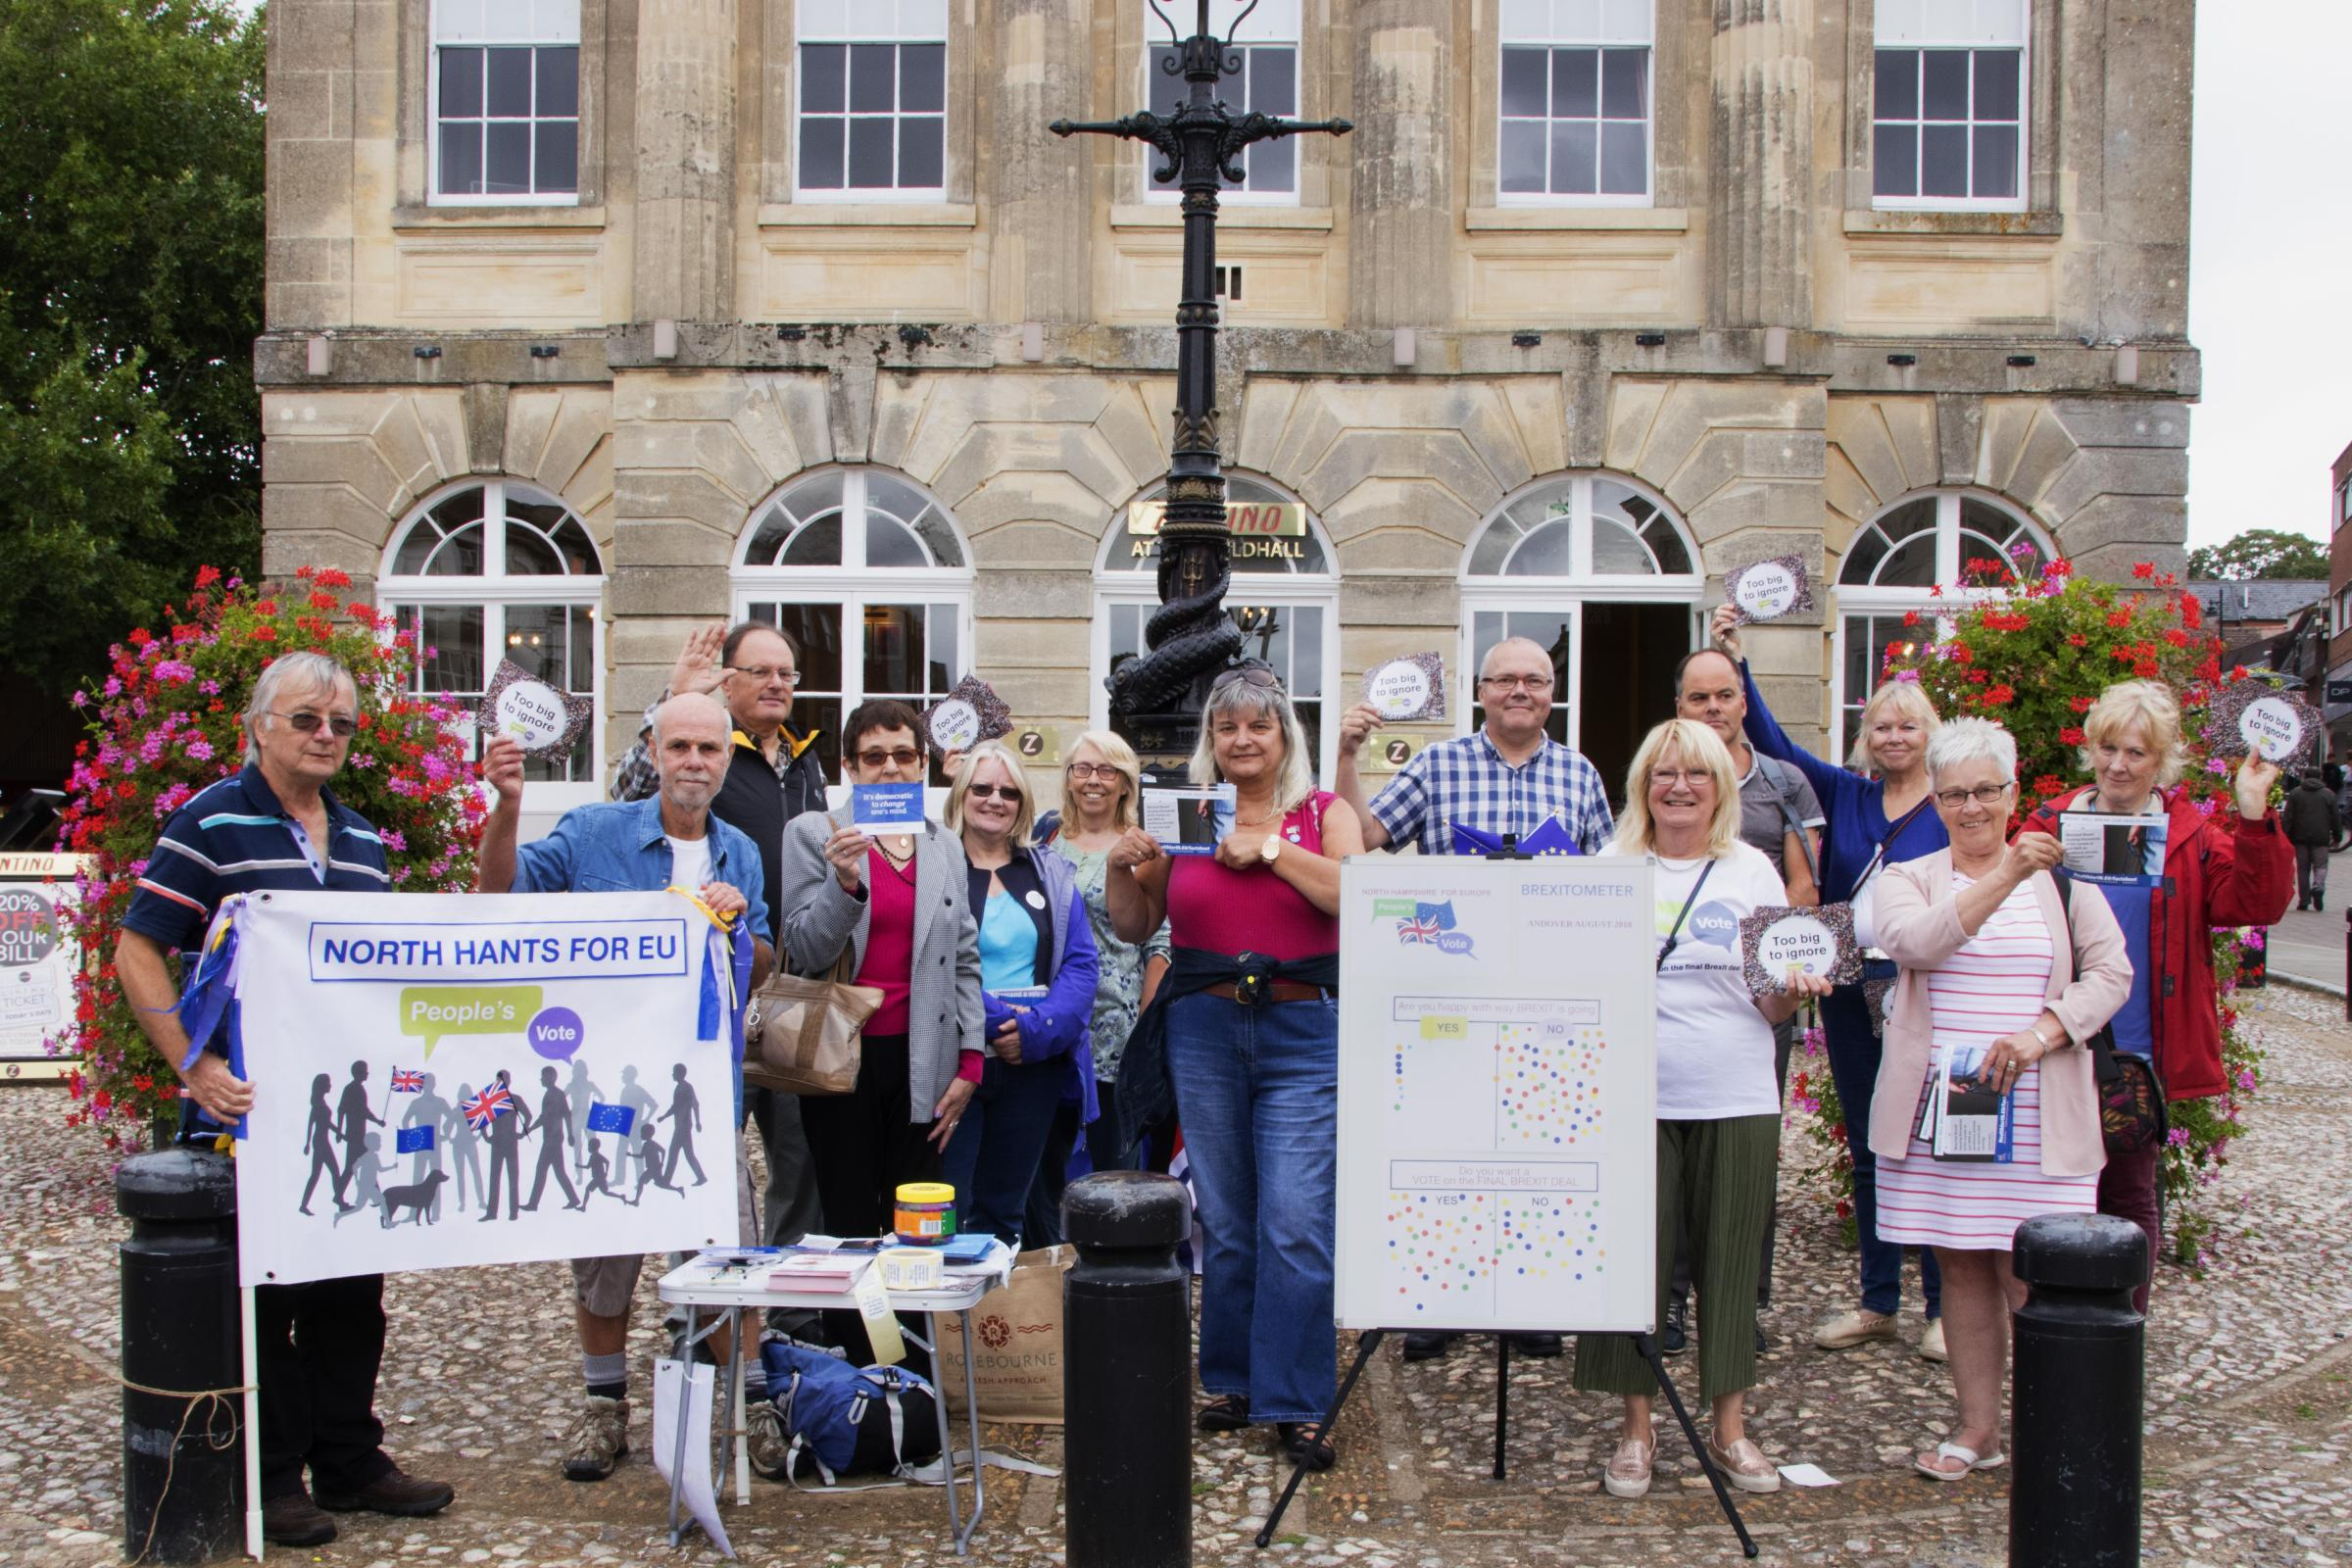 North Hampshire for Europe campaigners outside the Guildhall. Image: Linda Gates